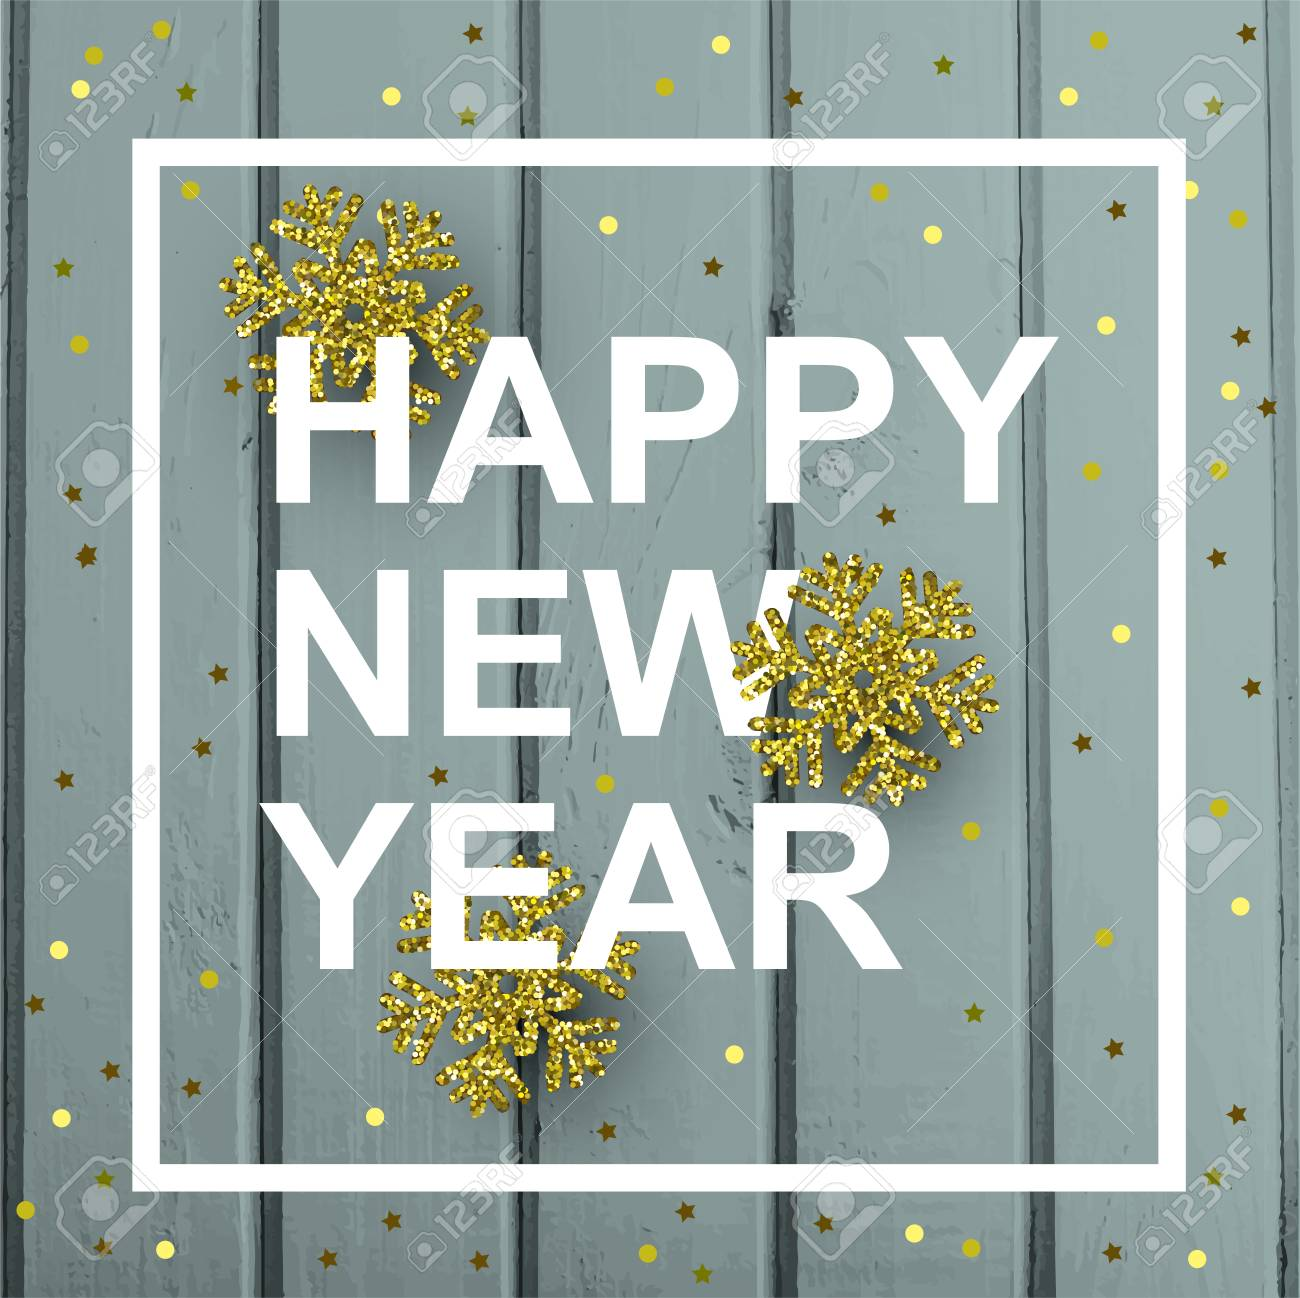 happy new year card with gold snowflakes and confetti on a background of wooden boards